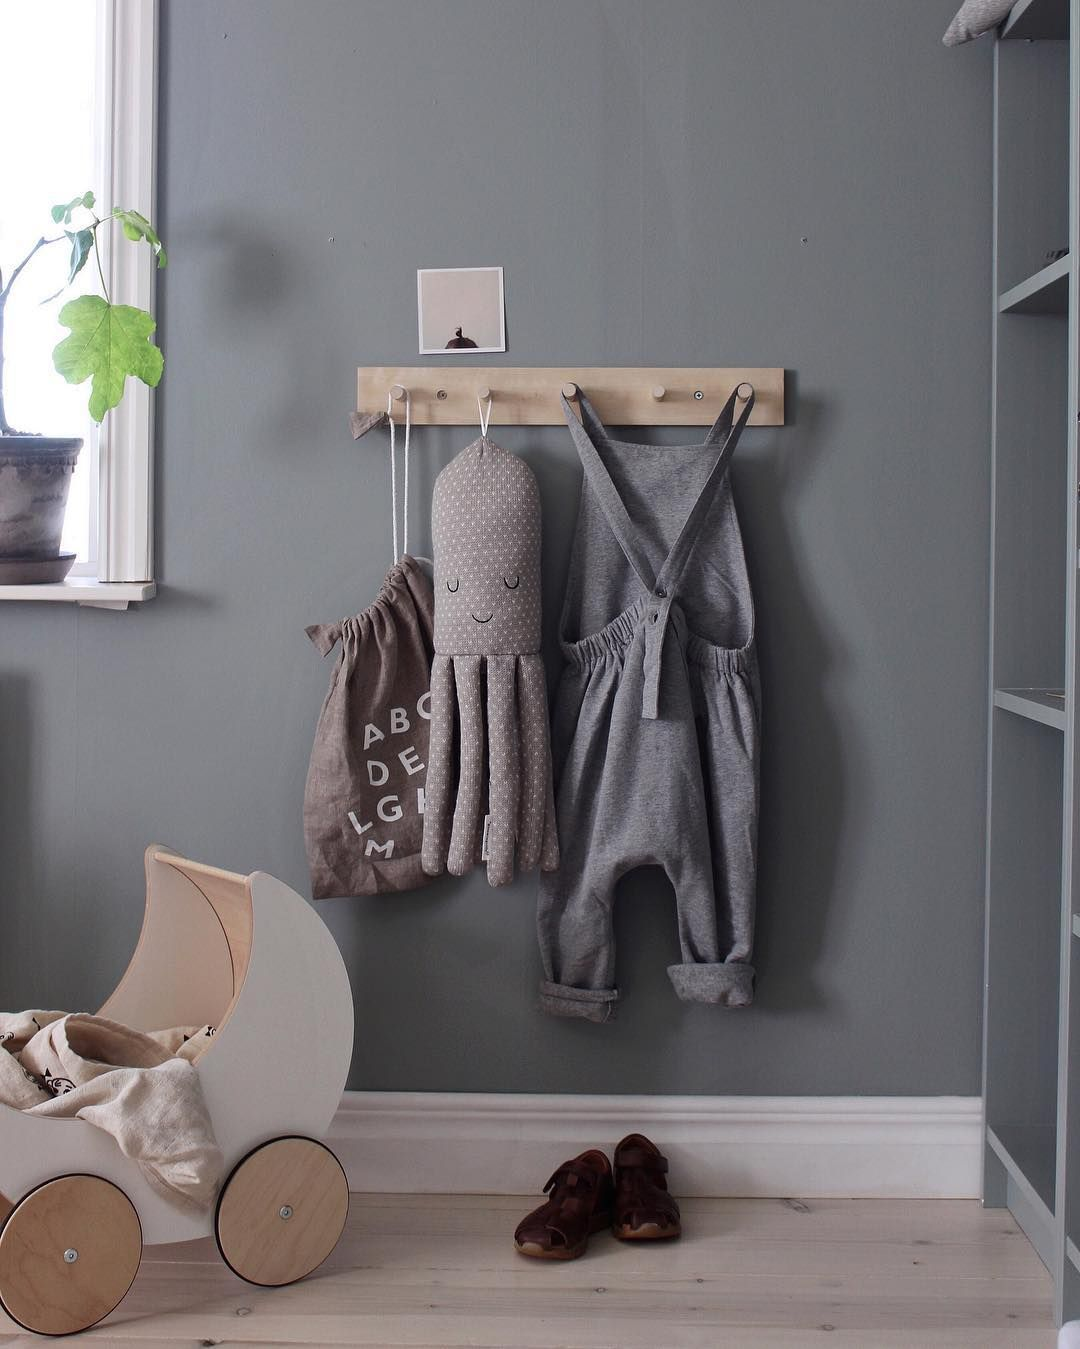 Peg Rack In Kids Room For Coats And